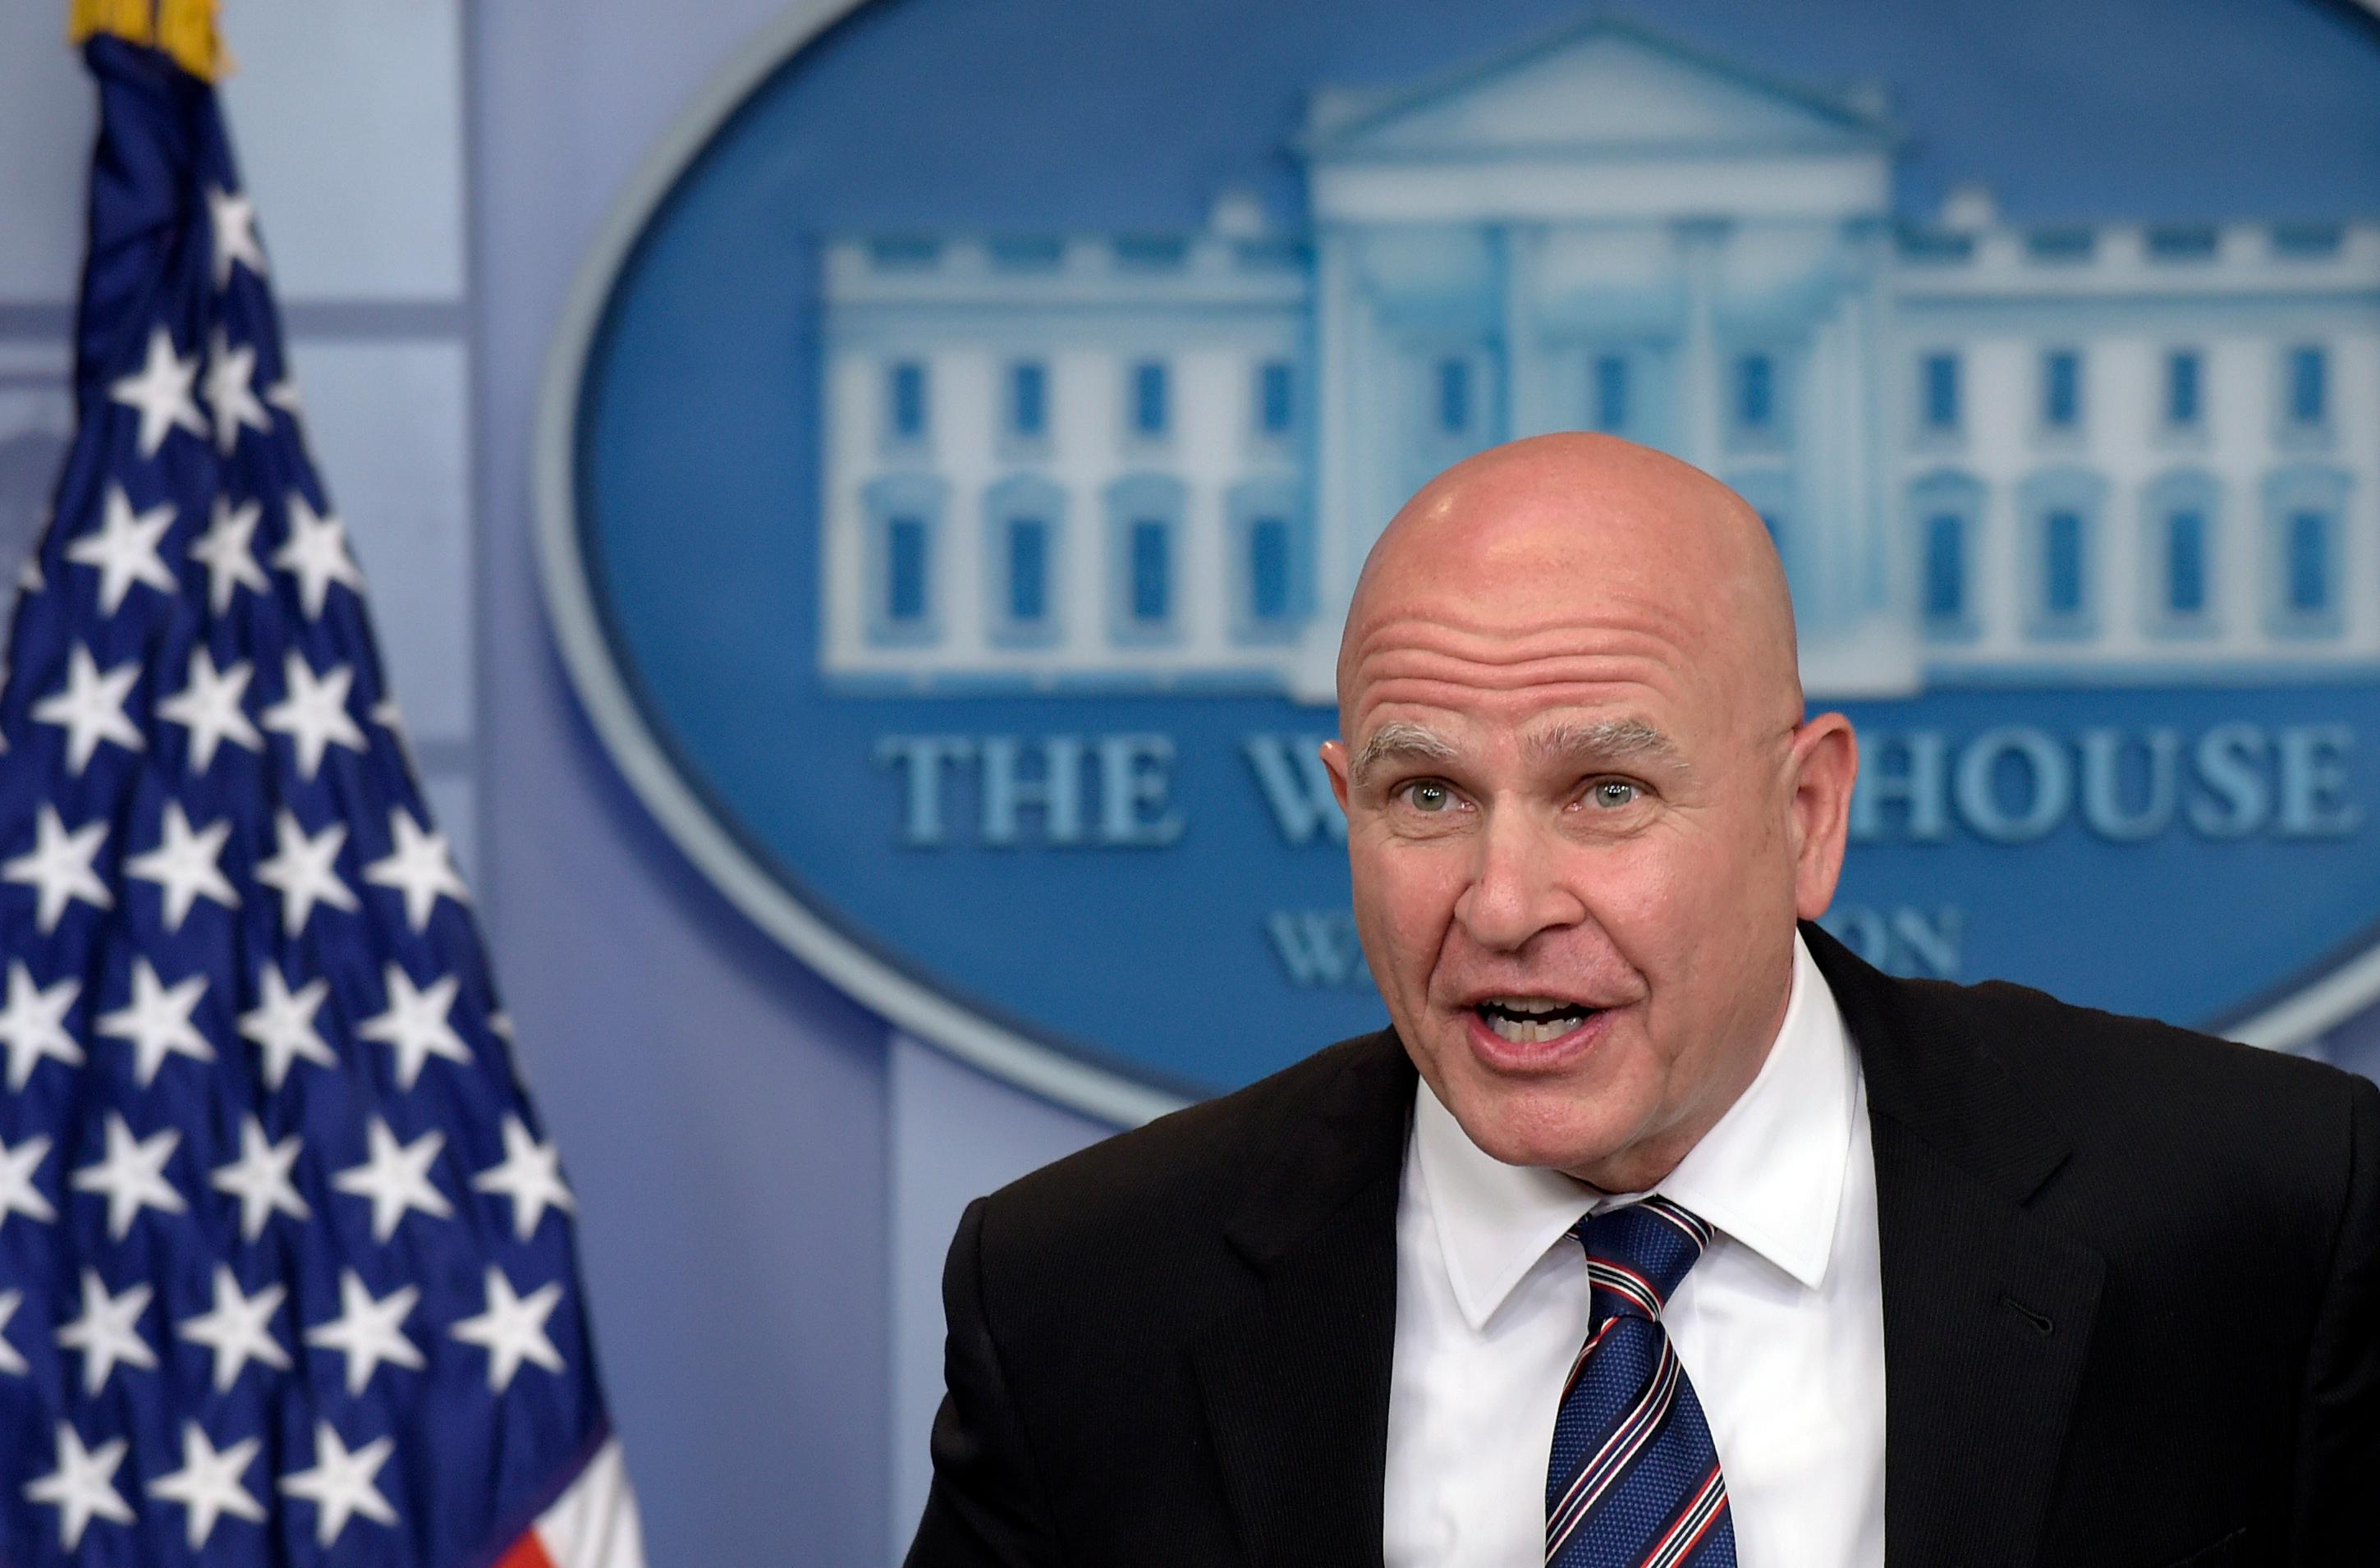 National Security Adviser H.R. McMaster speaks during a briefing at the White House in Washington, Tuesday, May 16, 2017. The White House has an unusual credibility problem: President Donald Trump's aides deliver questionable statements or aggressively argue points that Tump himself then contradicts. (AP Photo/Susan Walsh)